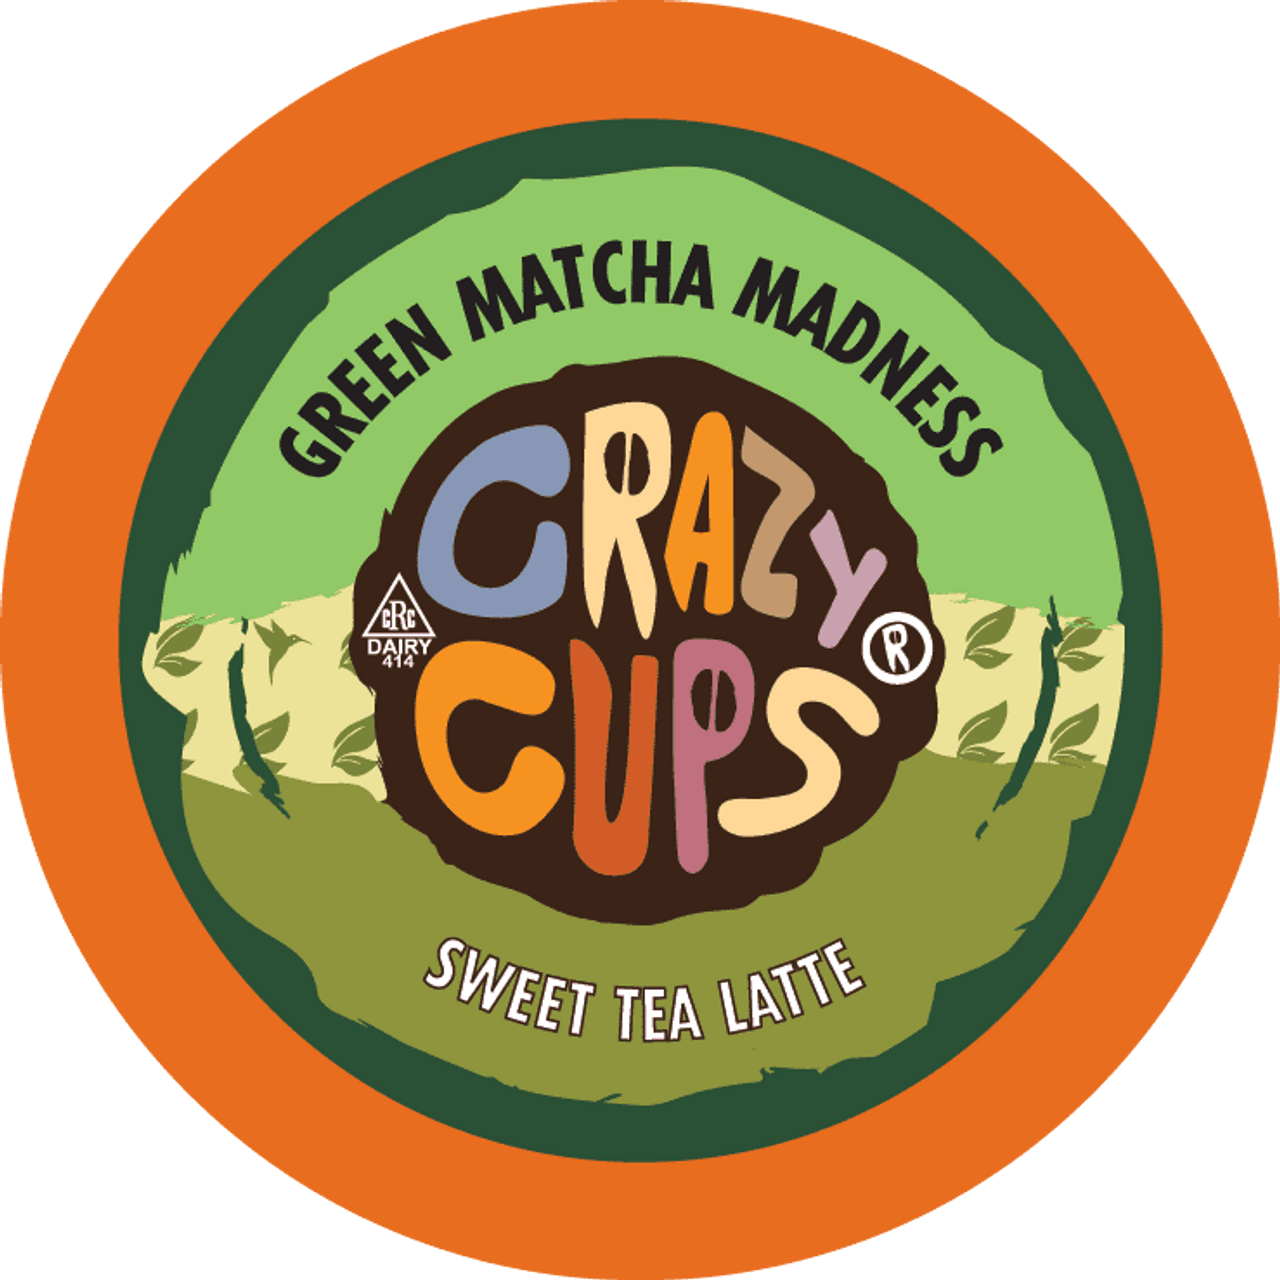 Green Matcha Madness by Crazy Cups